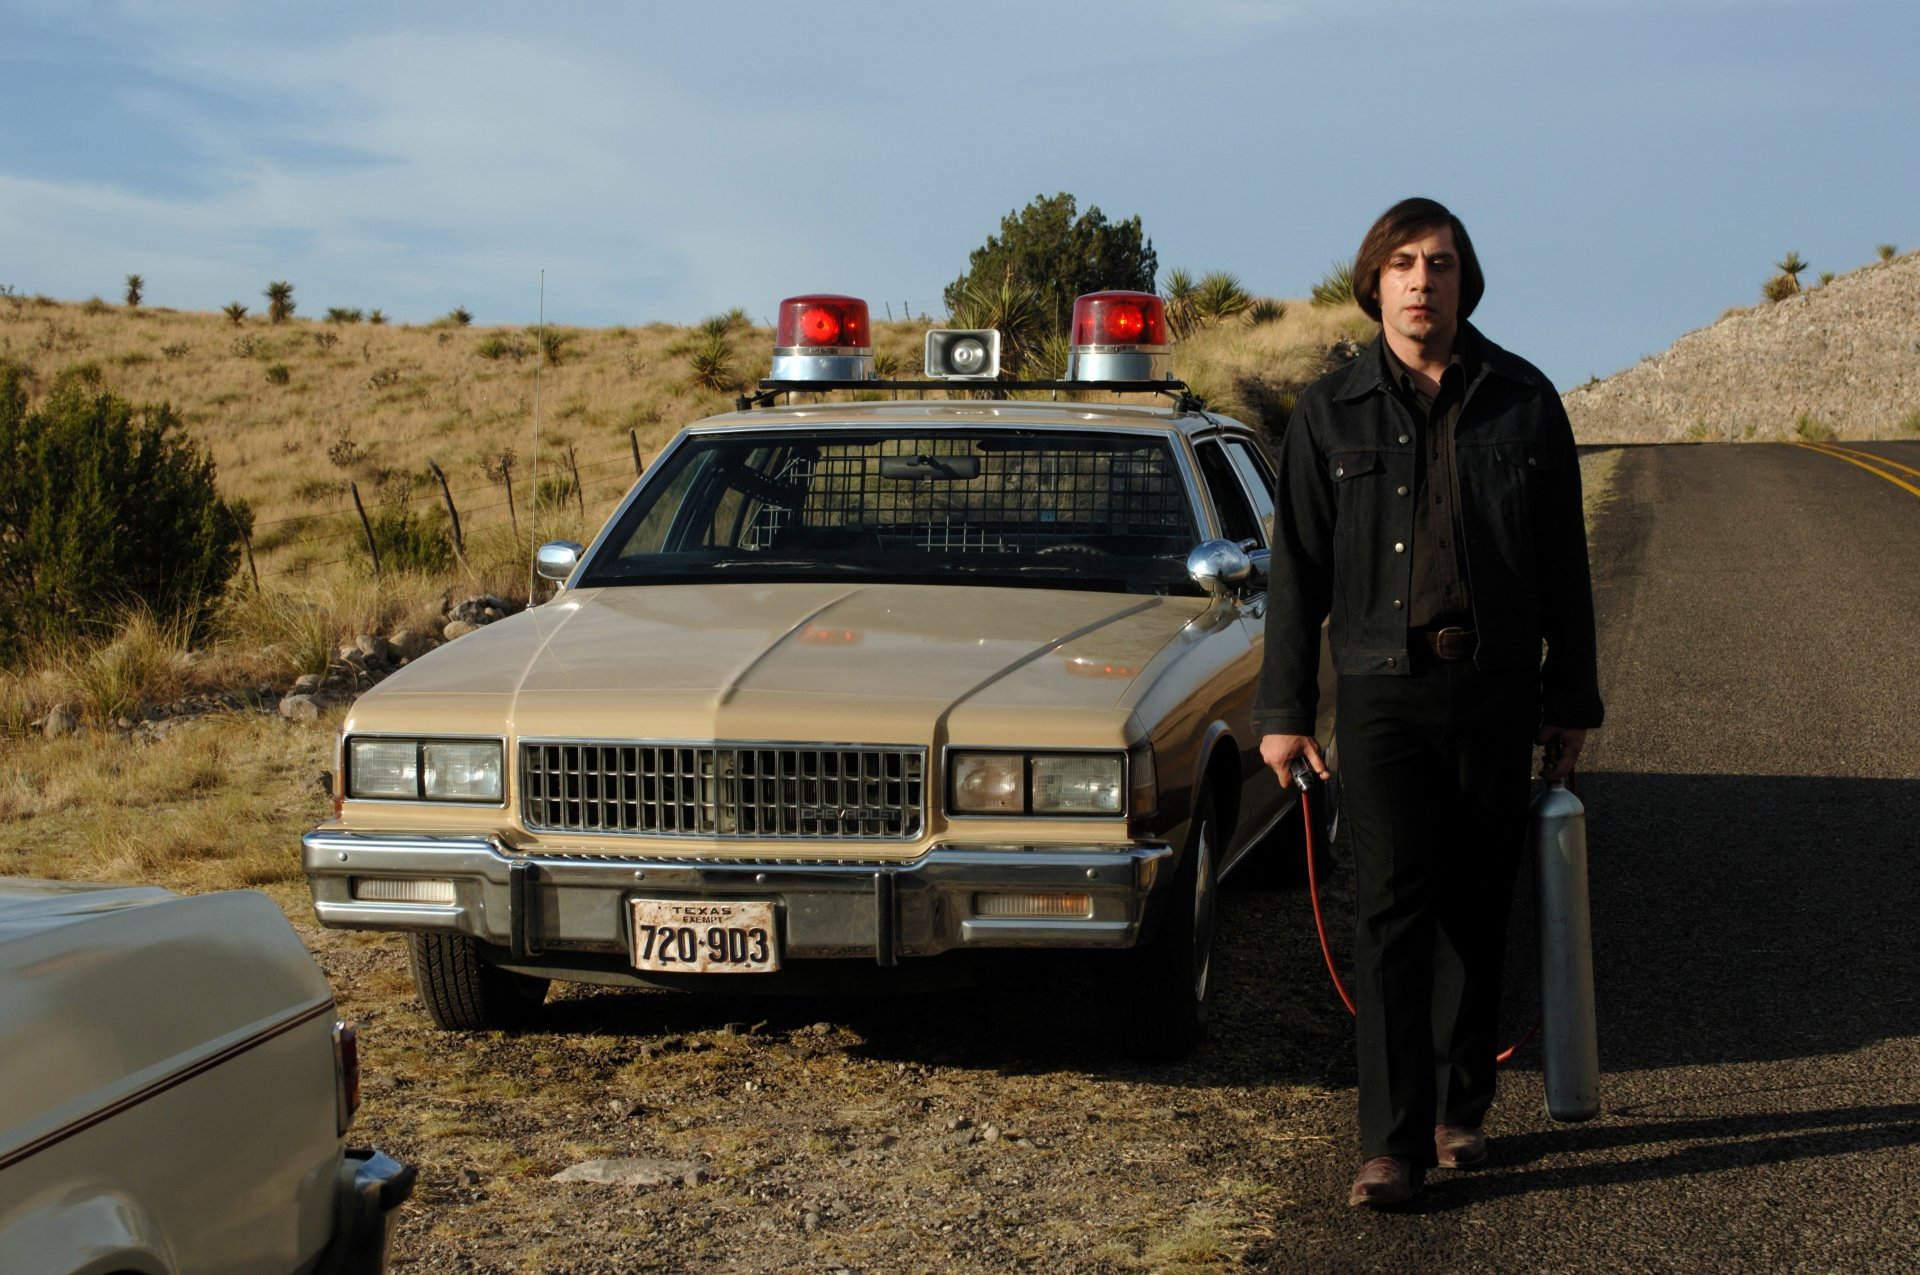 No Country For Old Men 4k Ultra Hd Wallpaper Background Image